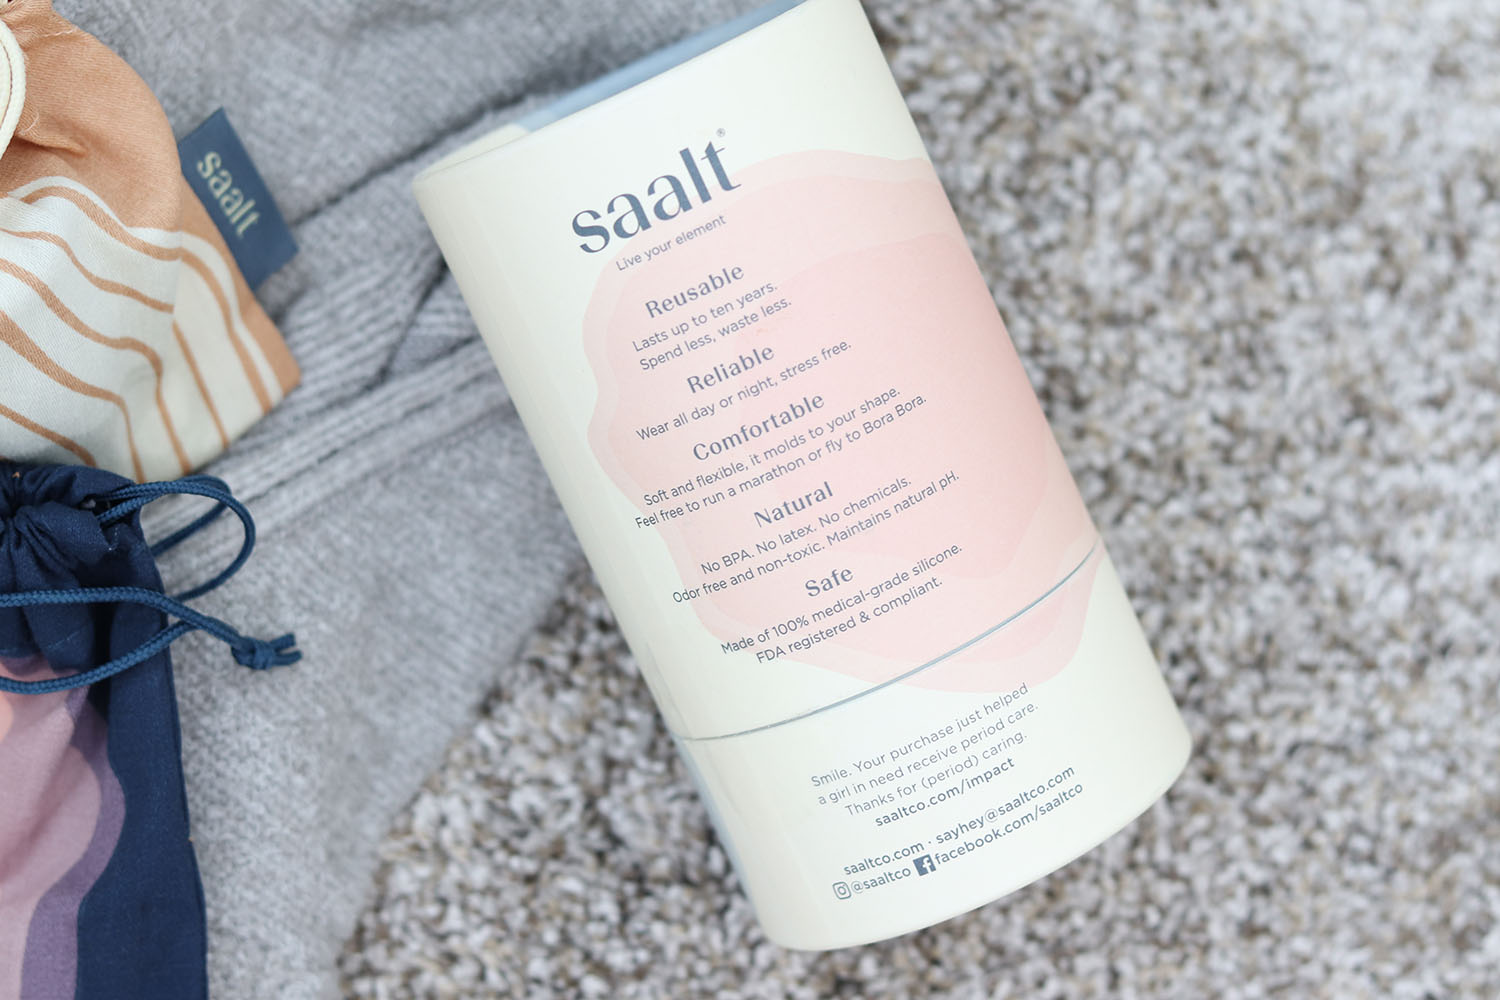 Saalt Soft Cup Review | My Experience Using the Saalt Soft Menstrual Cup | Brighter Darling Blog